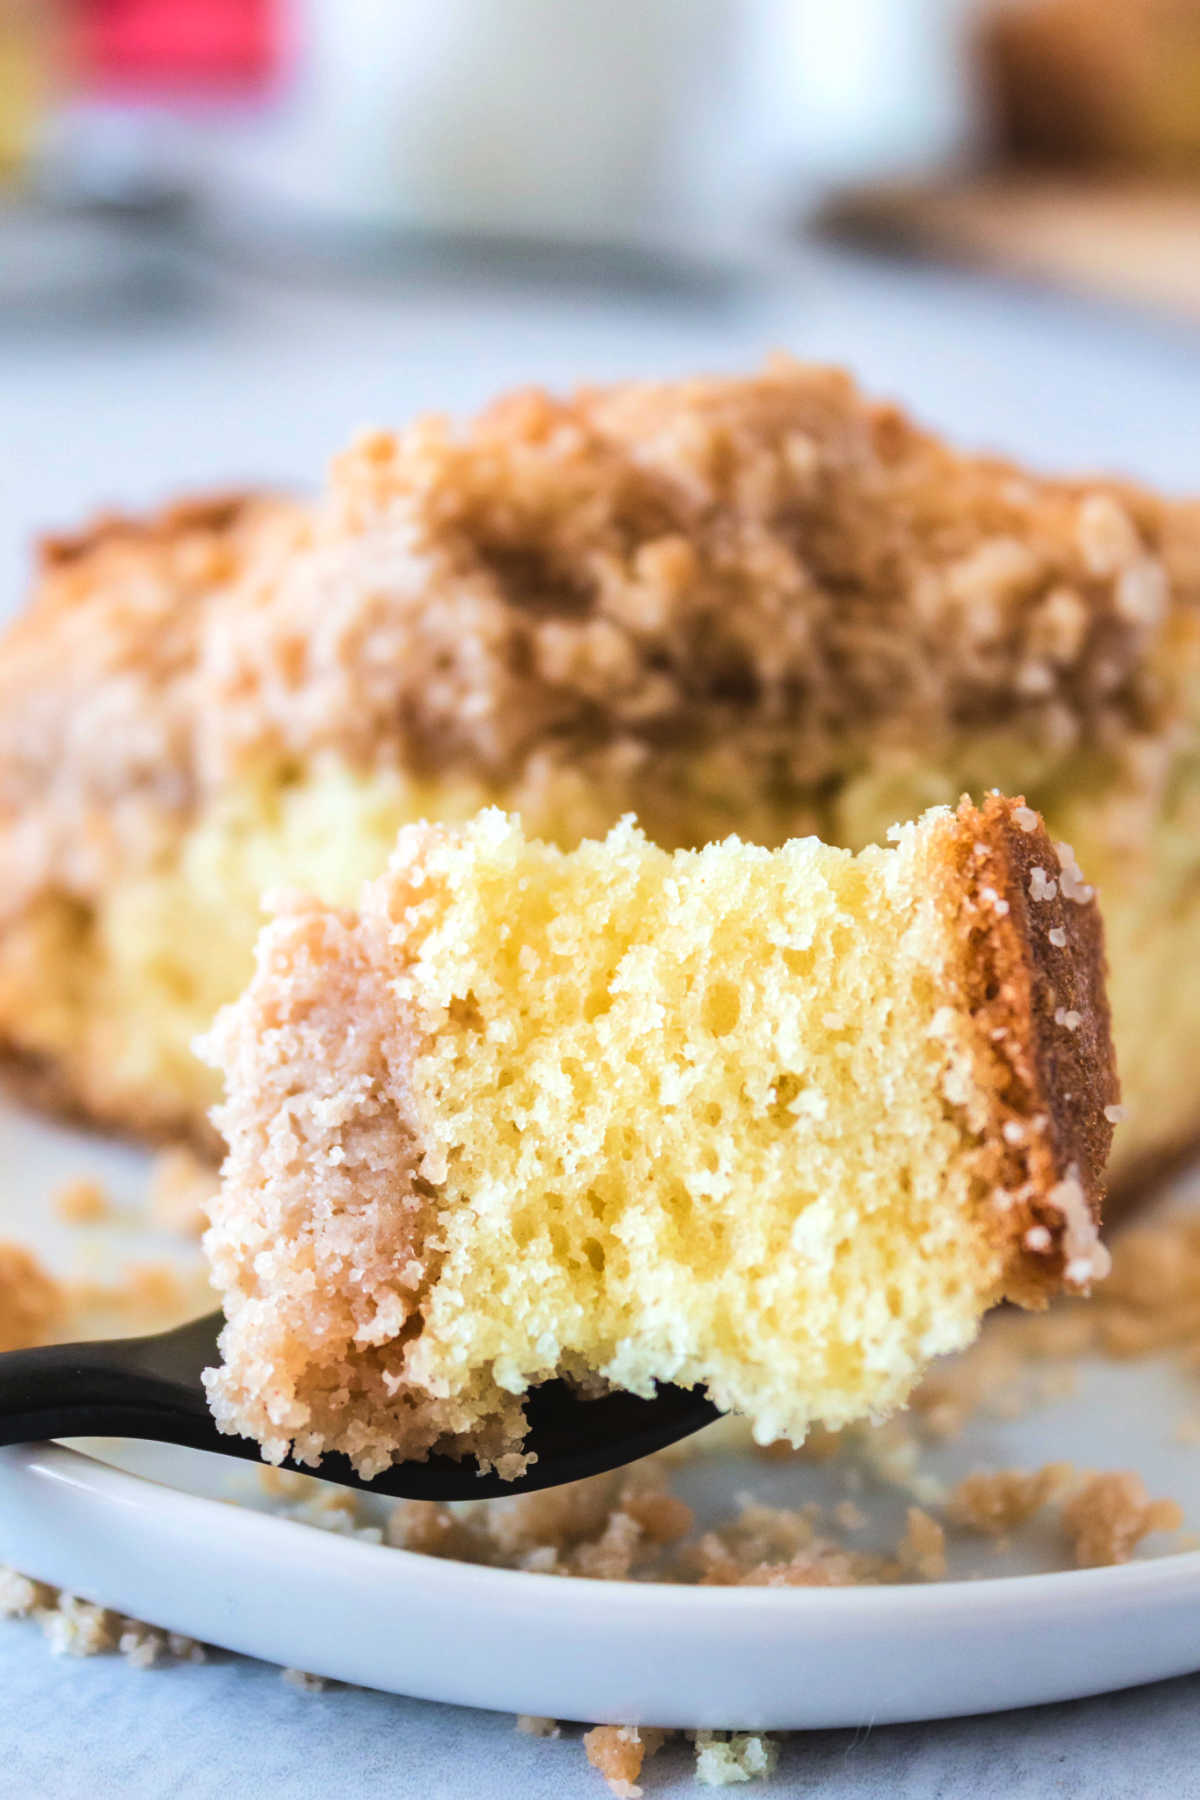 This Cinnamon Crumb Cake recipe is a breakfast classic. It has a rich, buttery, and tender cake crumb and a cinnamon crumb topping that is irresistible. via @foodfolksandfun